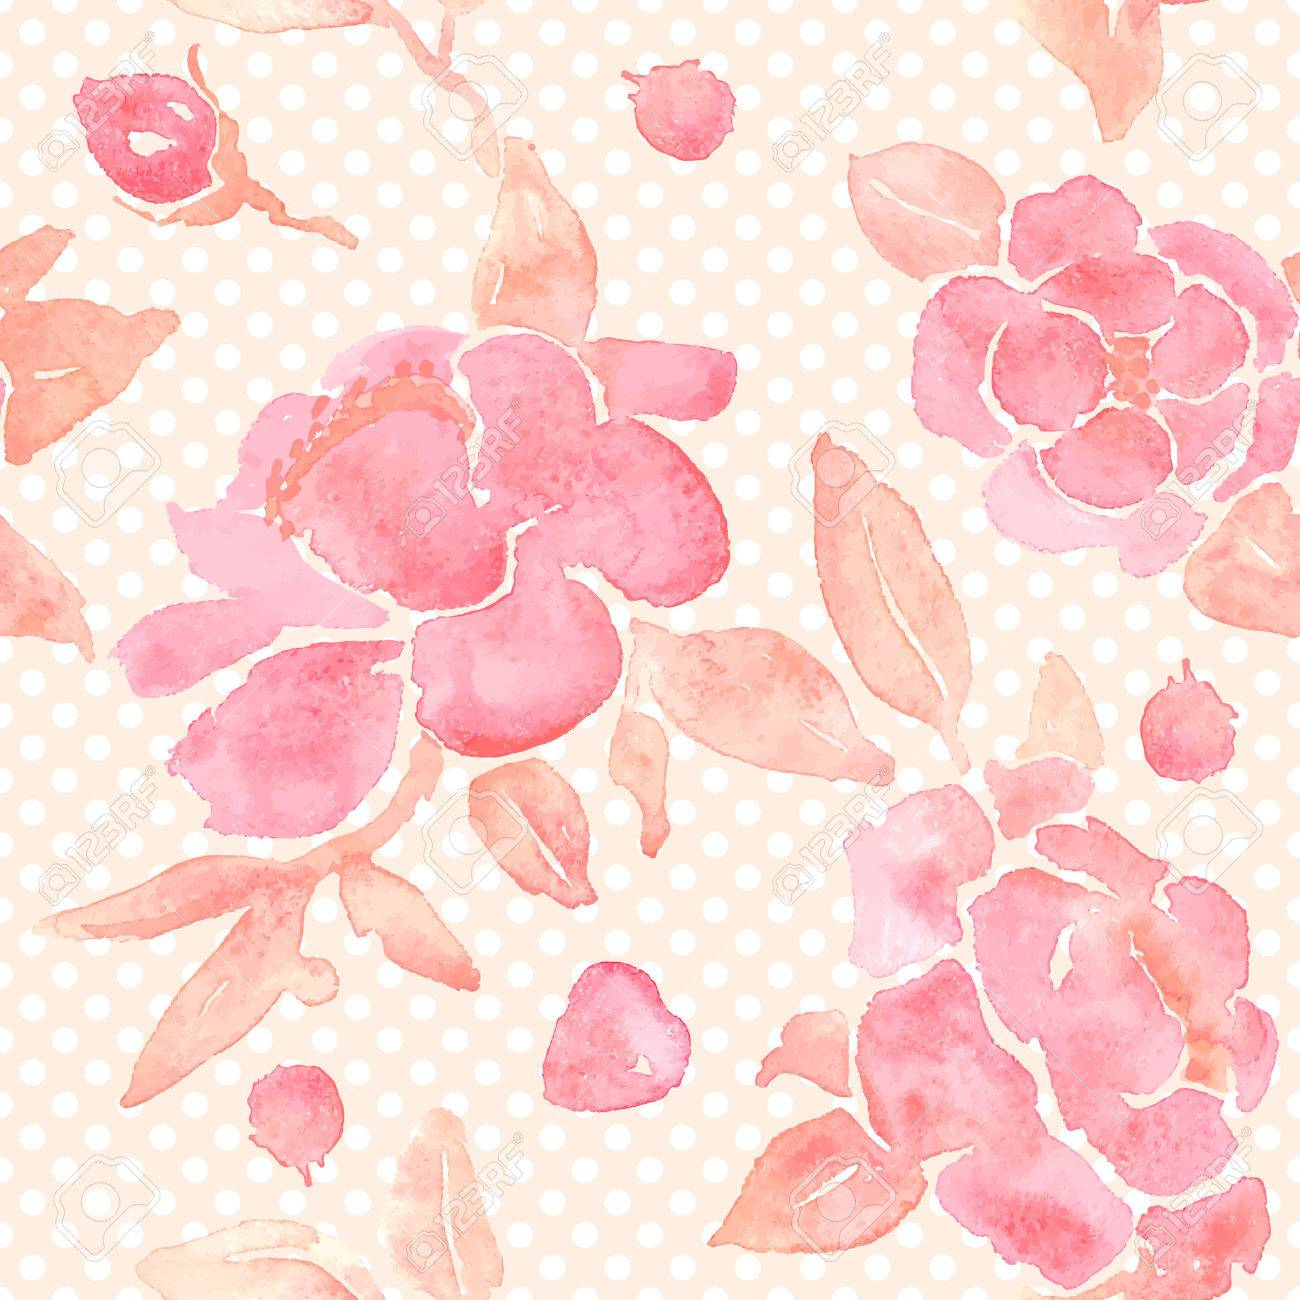 Seamless Wallpaper With Peony Flowers Watercolor Painting In